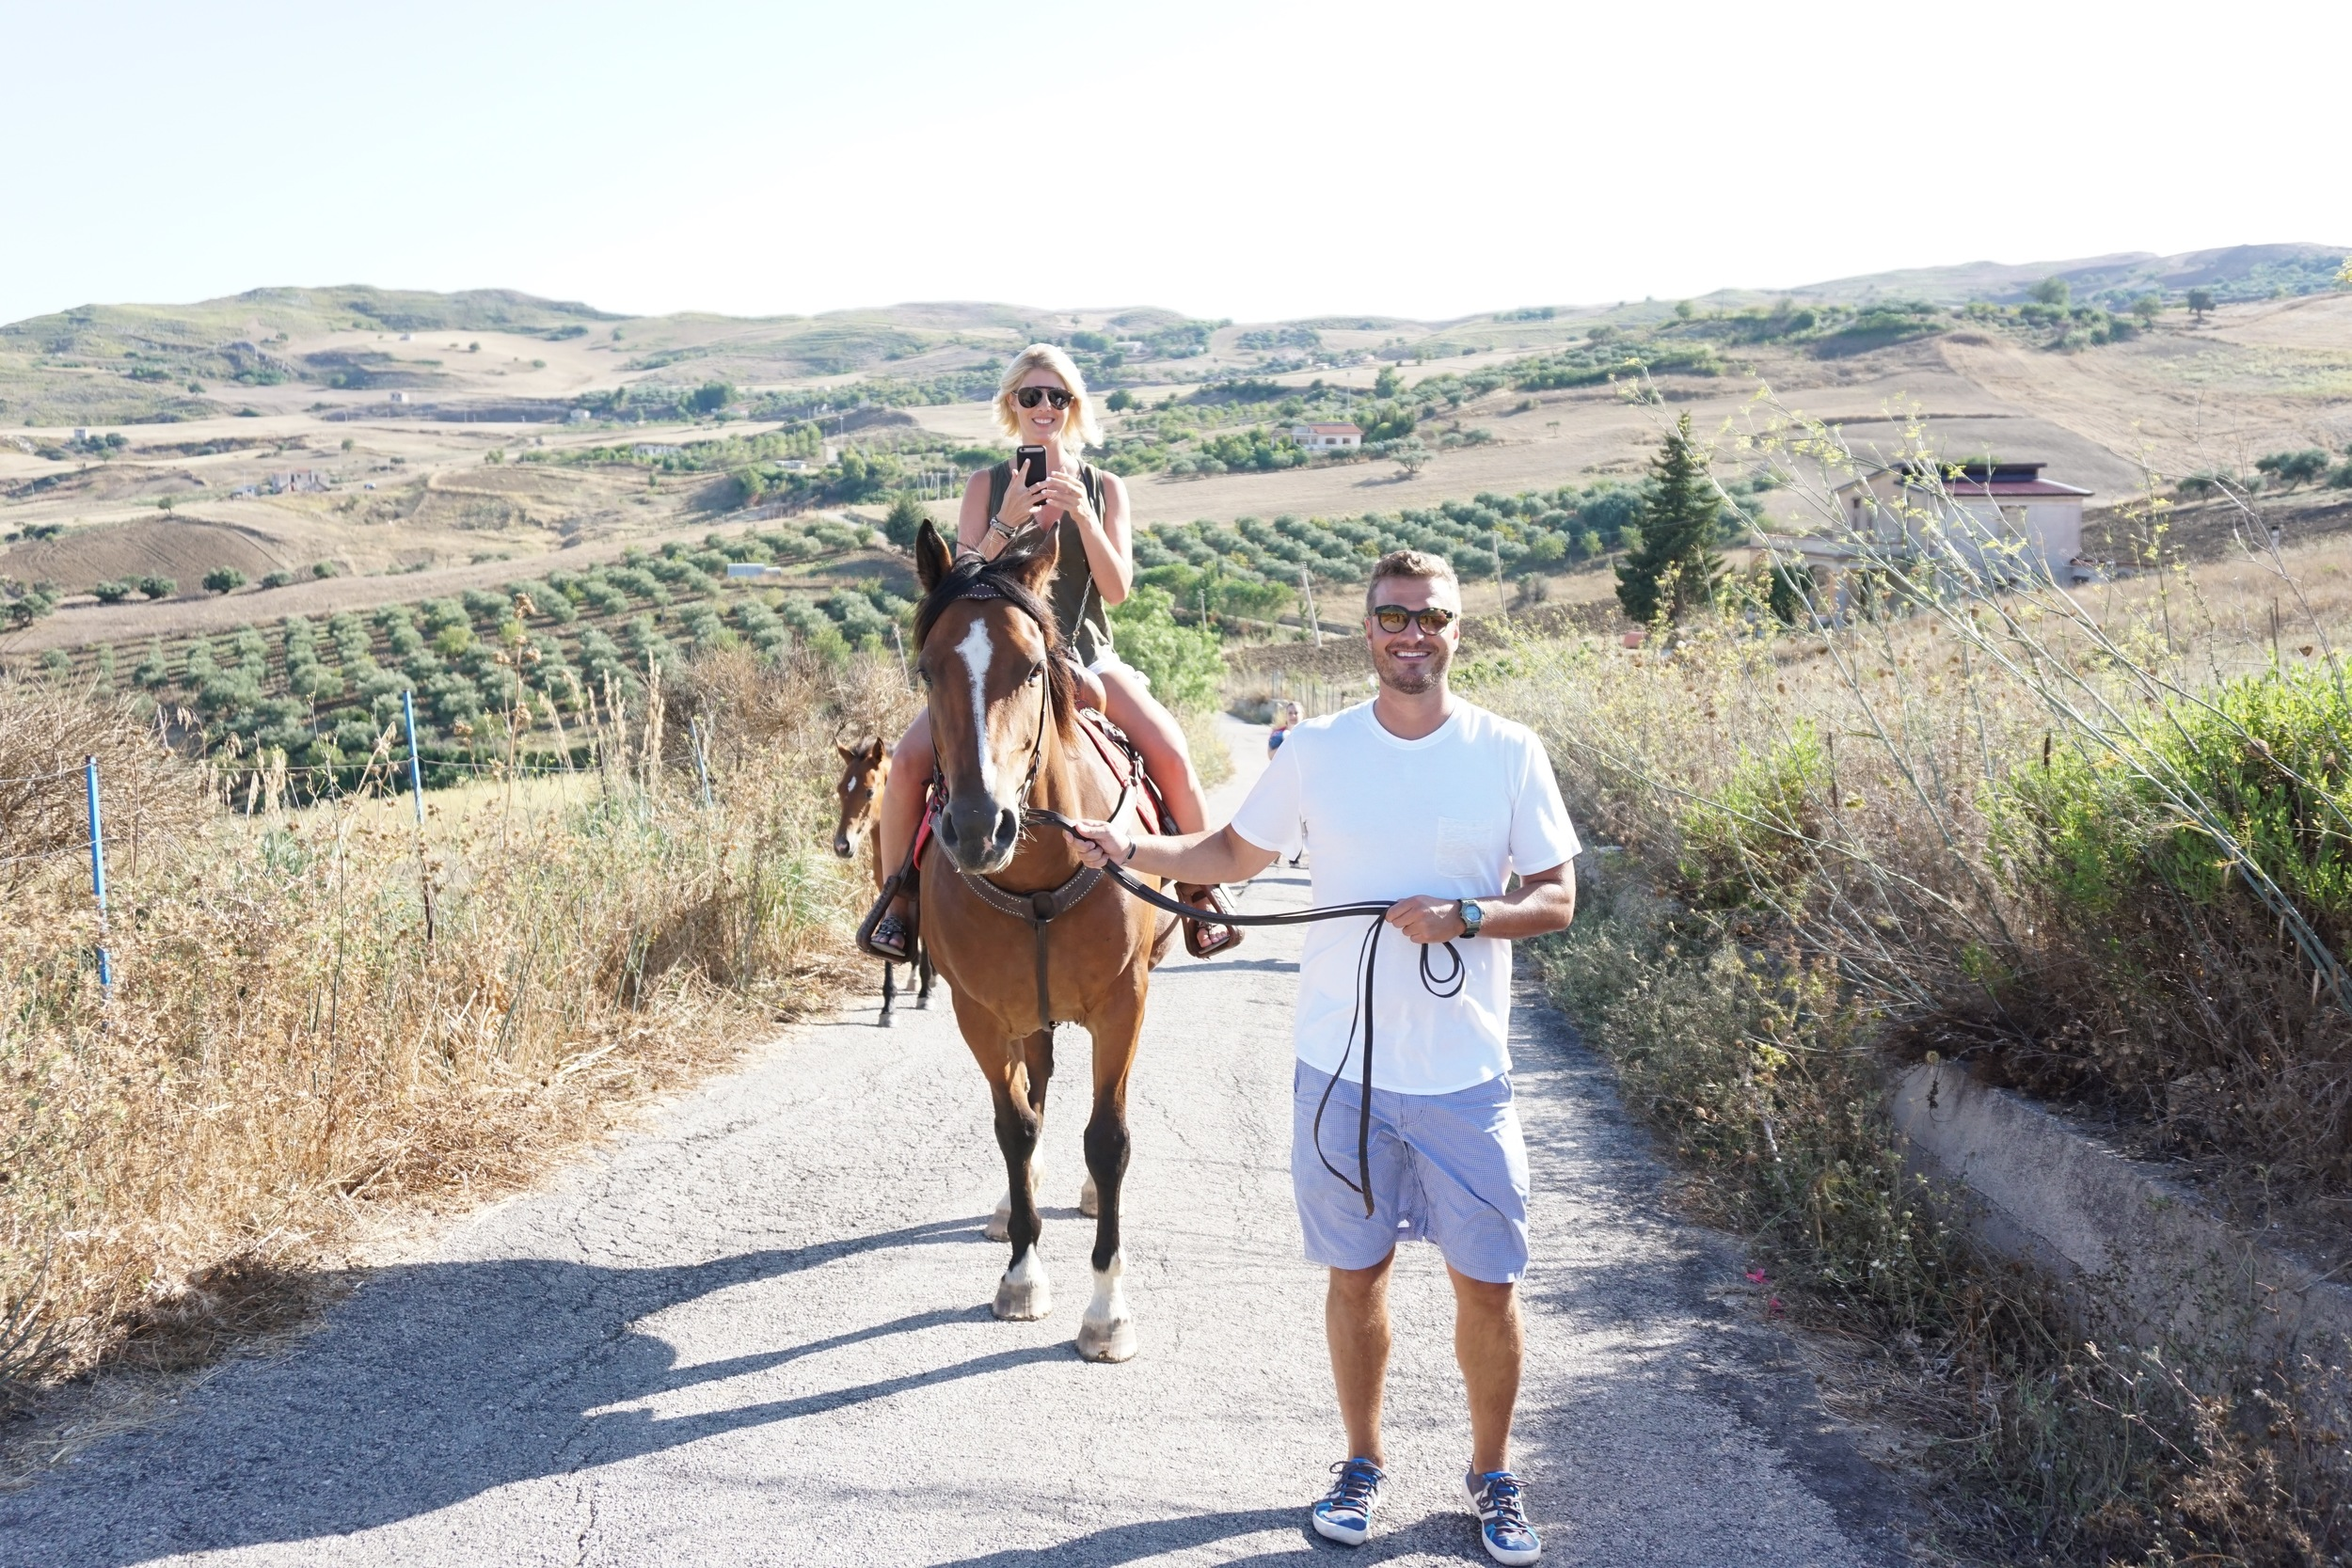 This is something you don't see everyday. Jay and me riding horses though the Sicilian countryside